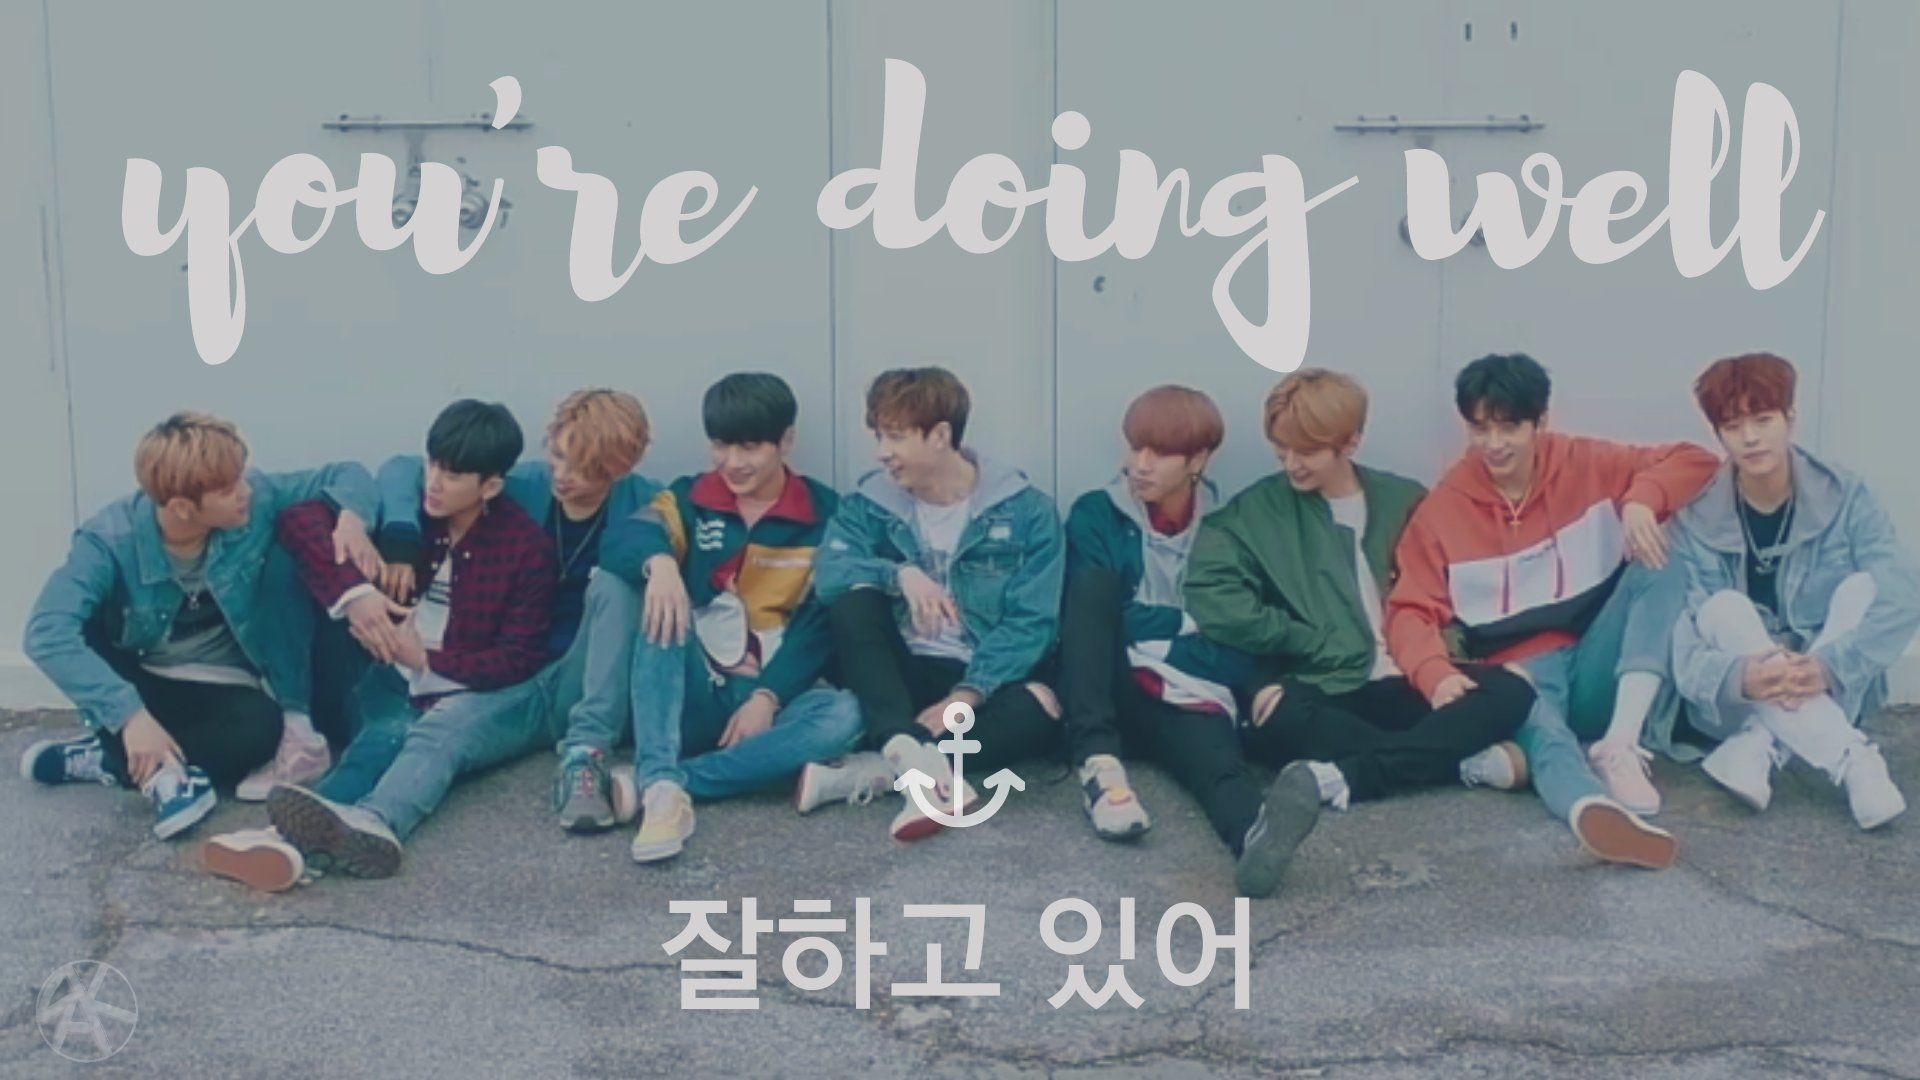 Stray Kids Wallpaper Hd Image Search Results Kids Wallpaper Laptop Wallpaper Wallpaper